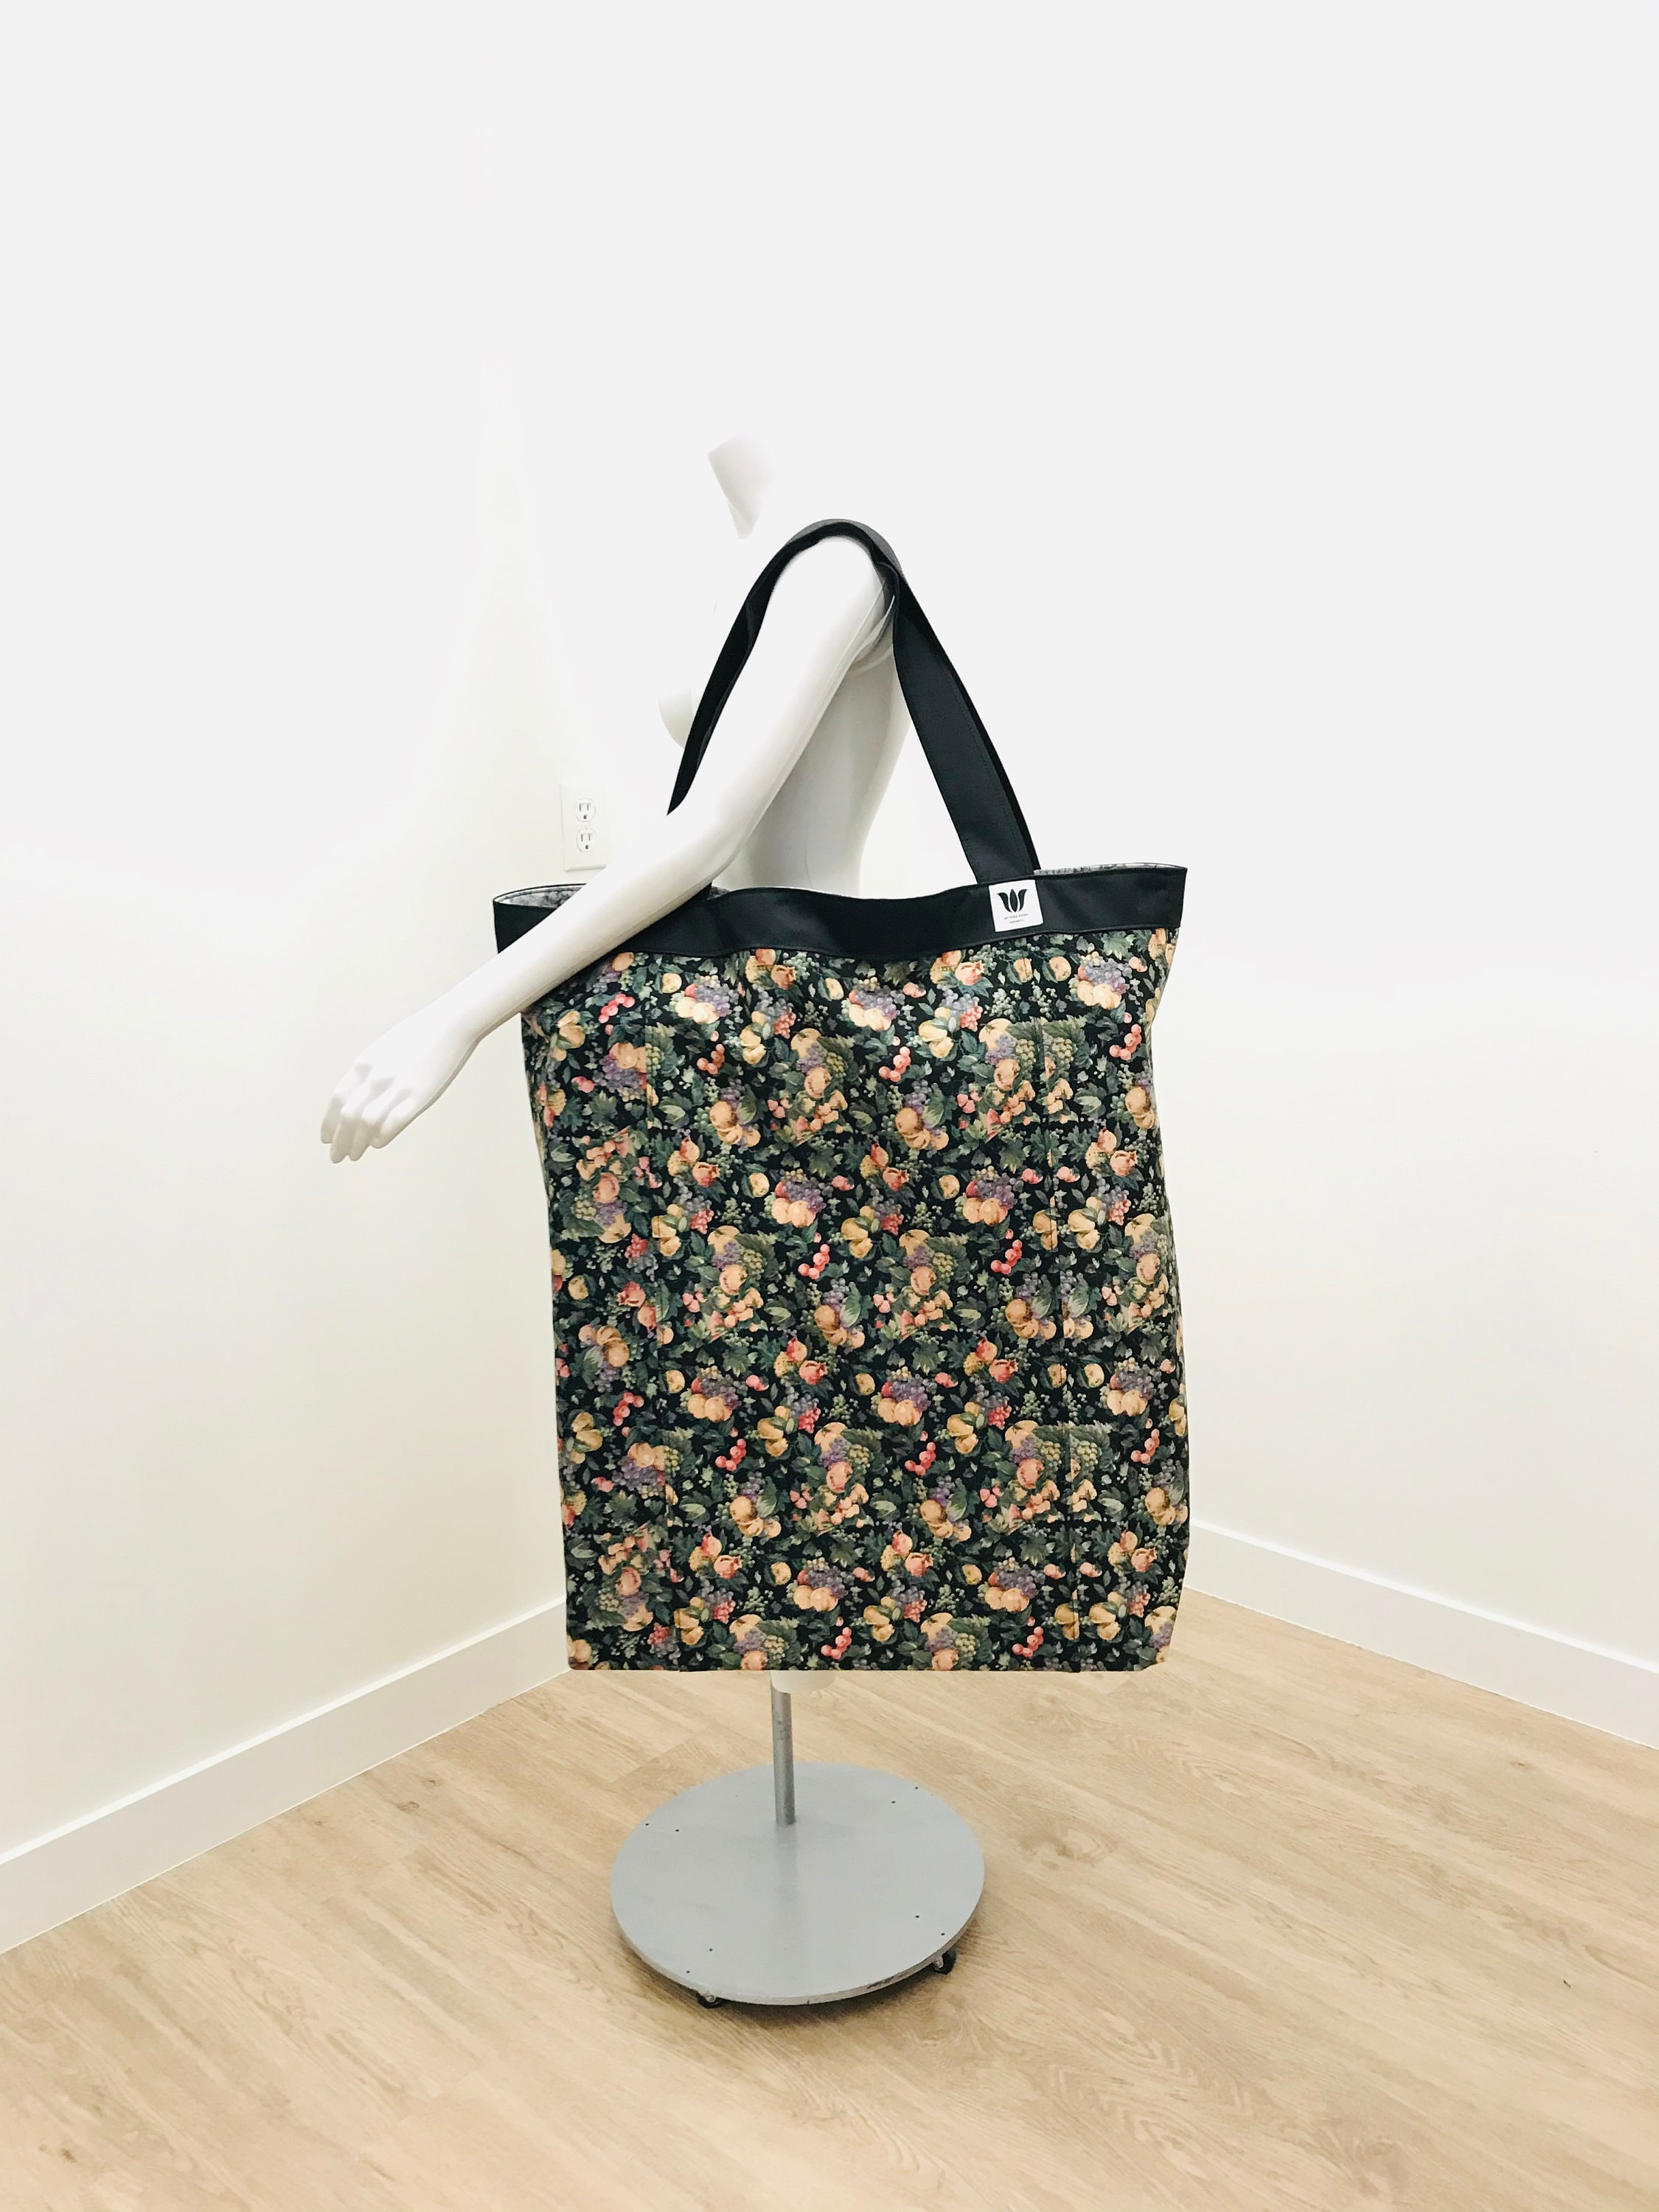 Yoga Bag Extra Large Yoga Tote Yoga Prop Bag Black Flora Printl Yoga Prop Storage Yoga Organization Large Yoga Bag Large Tote